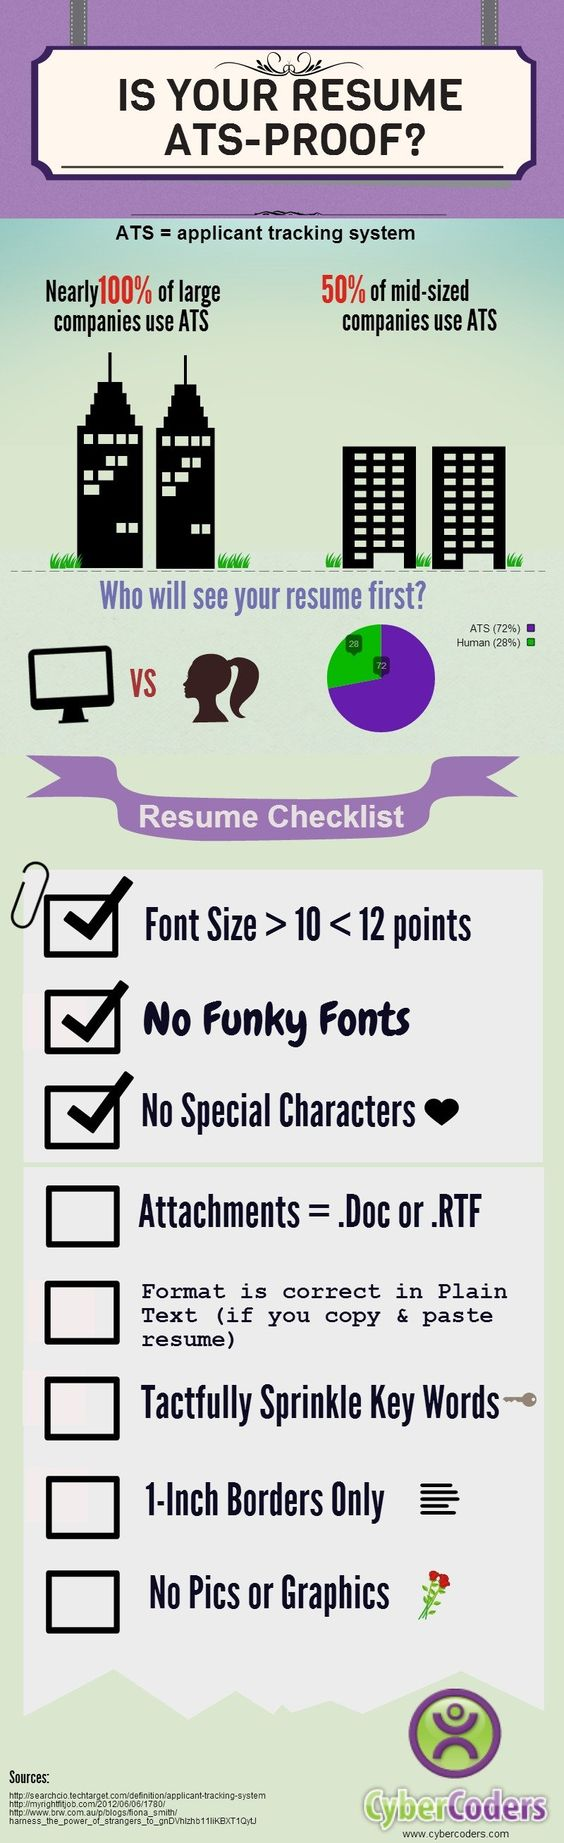 infographic is your resume ats proof way you work